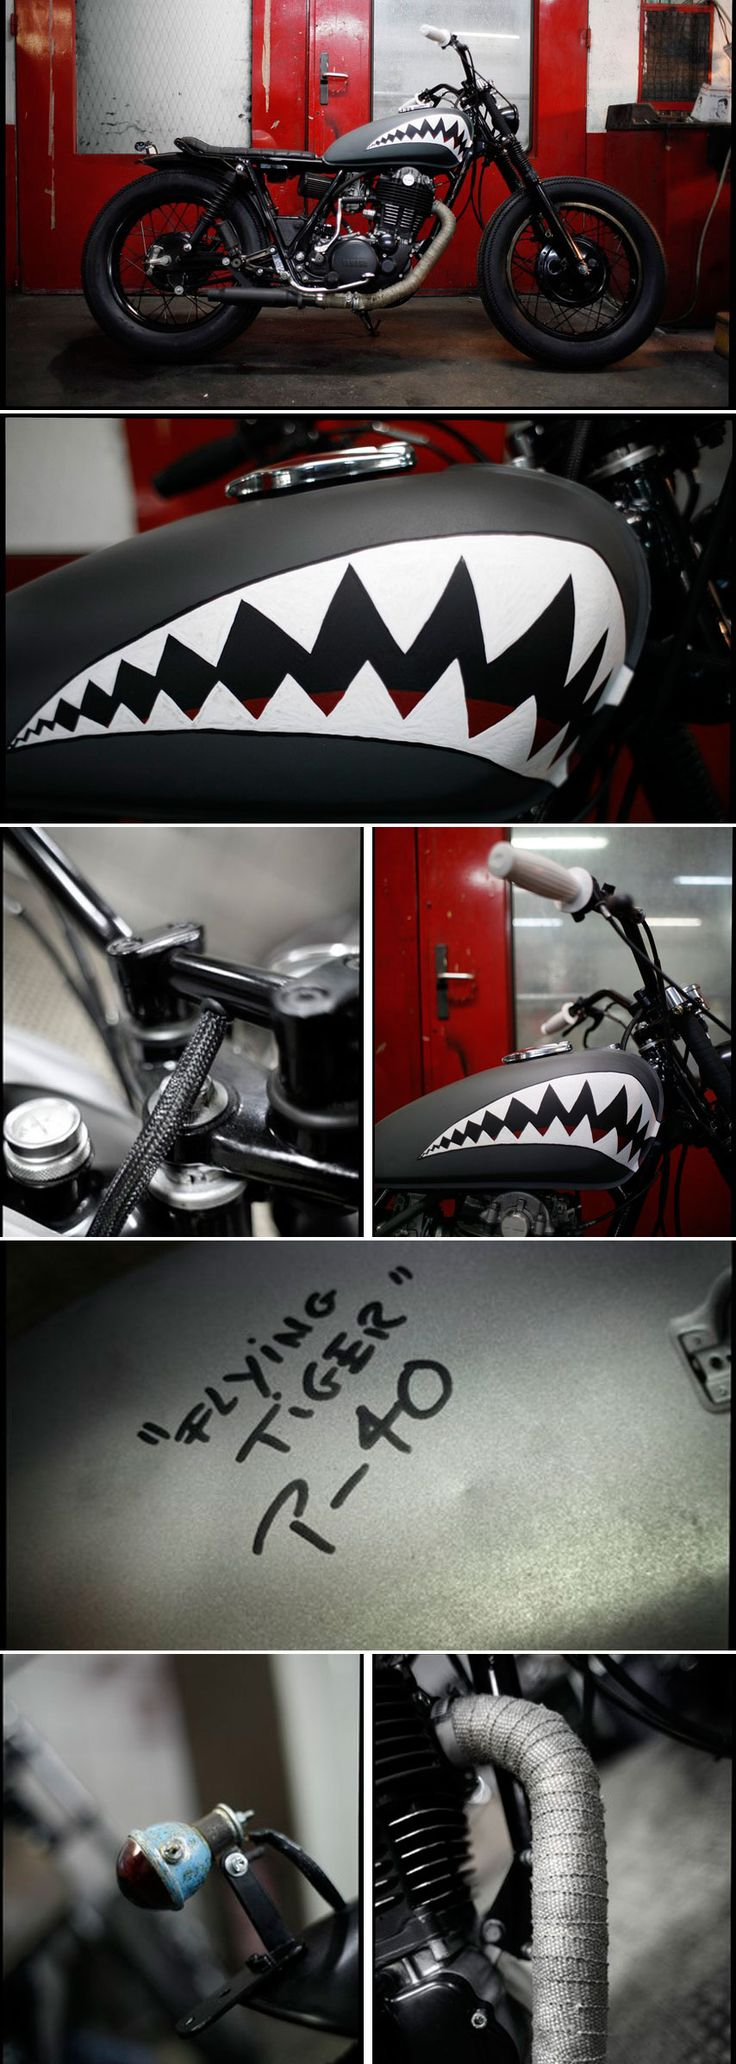 "500 SR ""Flying Tiger"" by Blitz Motorcycles - http://blitz-motorcycles.com/"